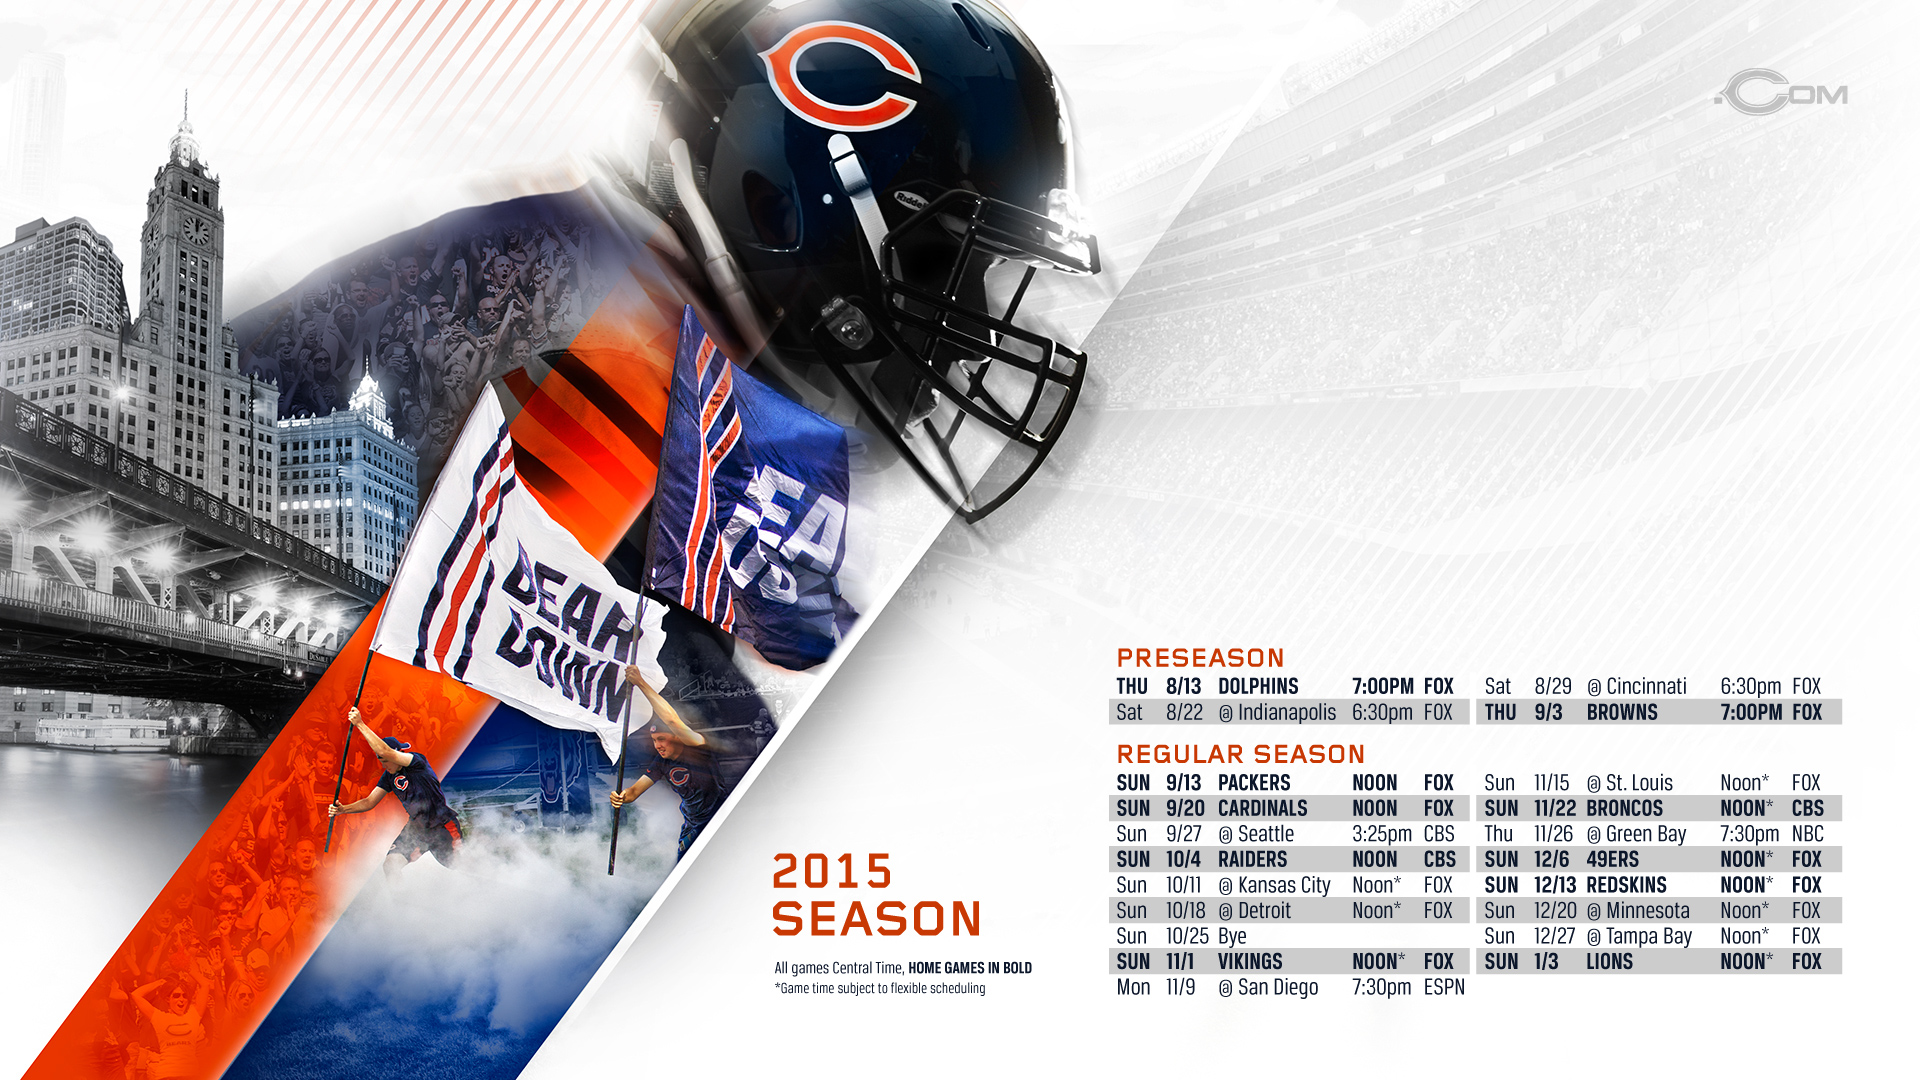 chicago bears 2015 schedule Car Tuning 1920x1080